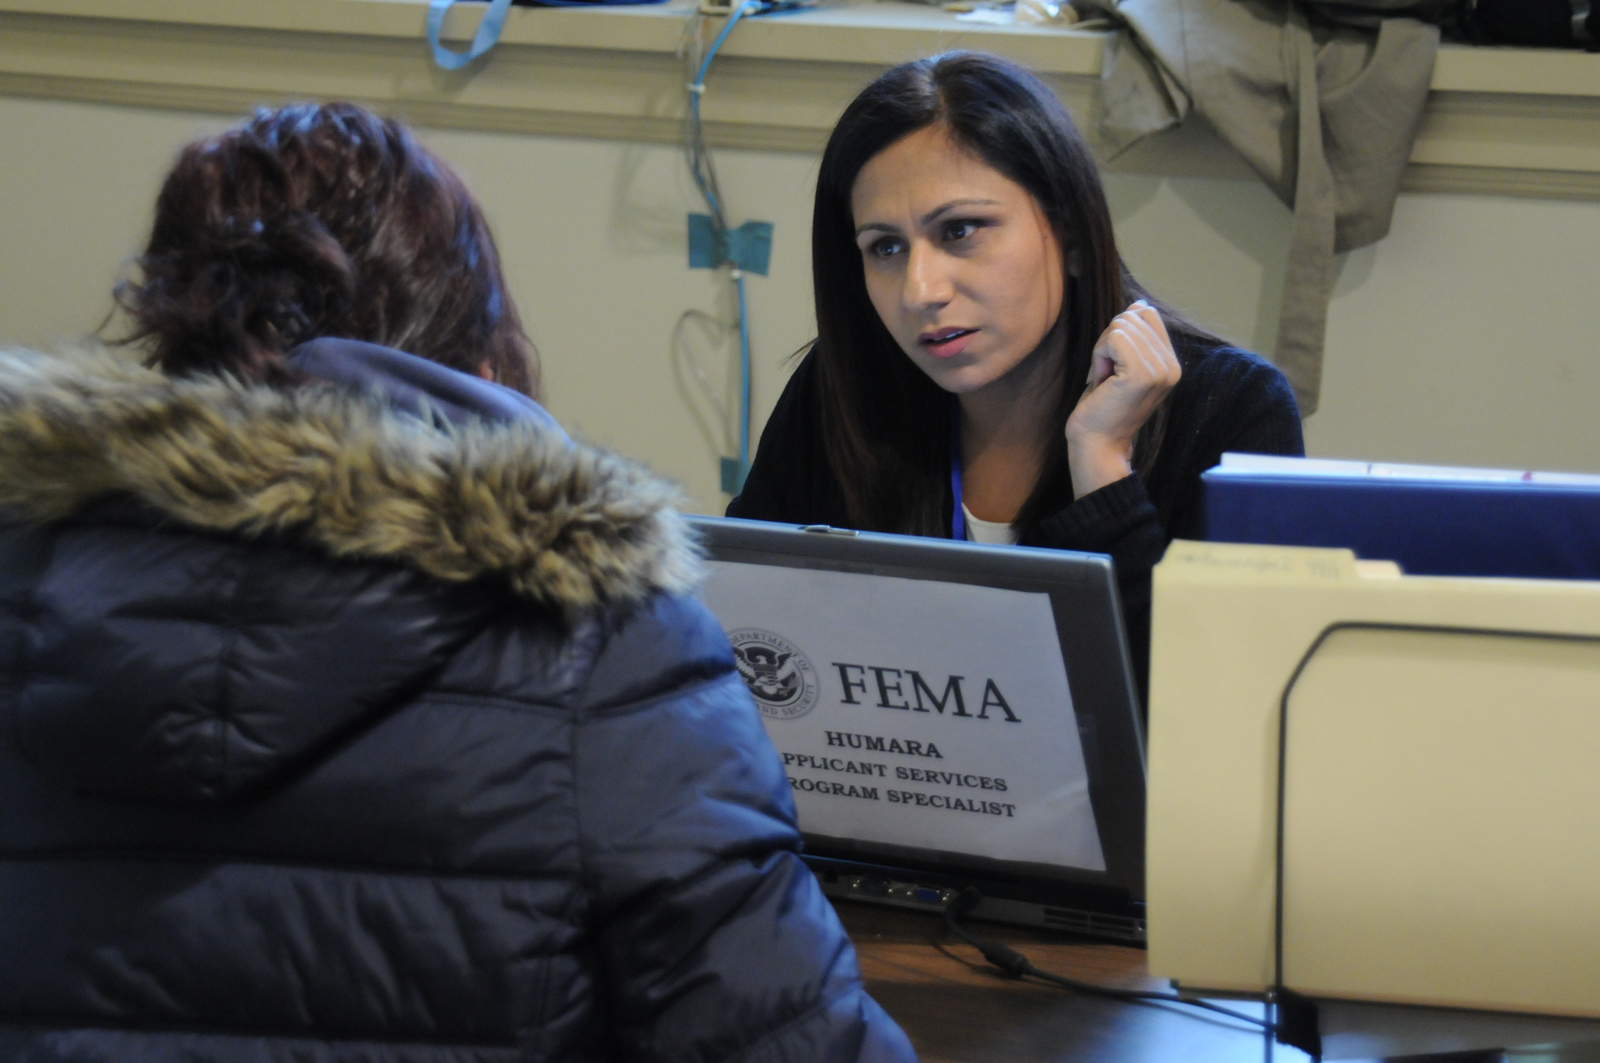 Disaster Recovery Specialist Bayonne N J Dec 1 2012 At The Hudson County Fema Disaster